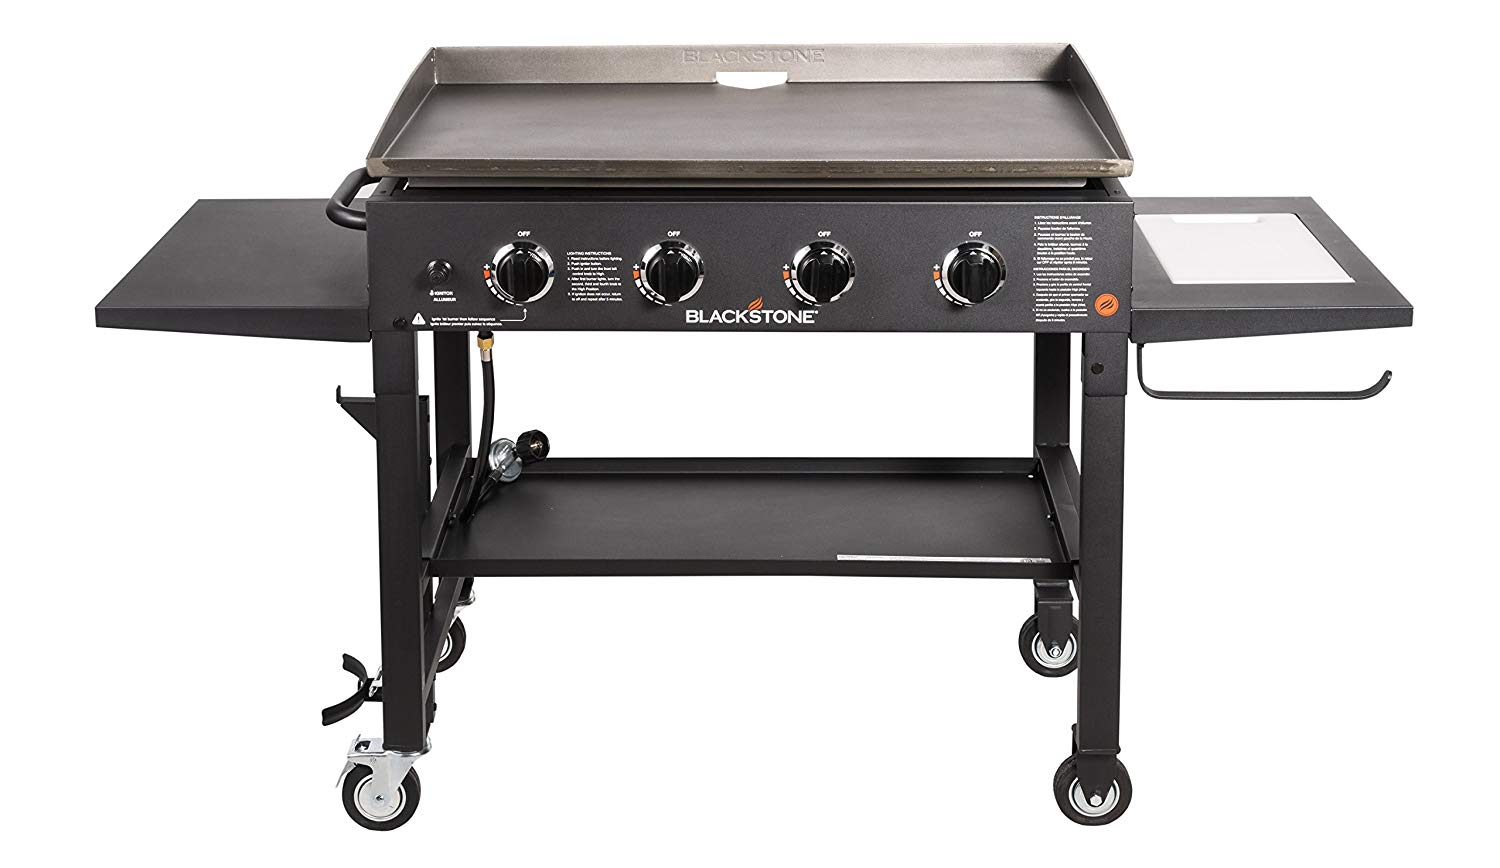 Review of Blackstone 36 inch Outdoor Flat Top Gas Grill Griddle Station